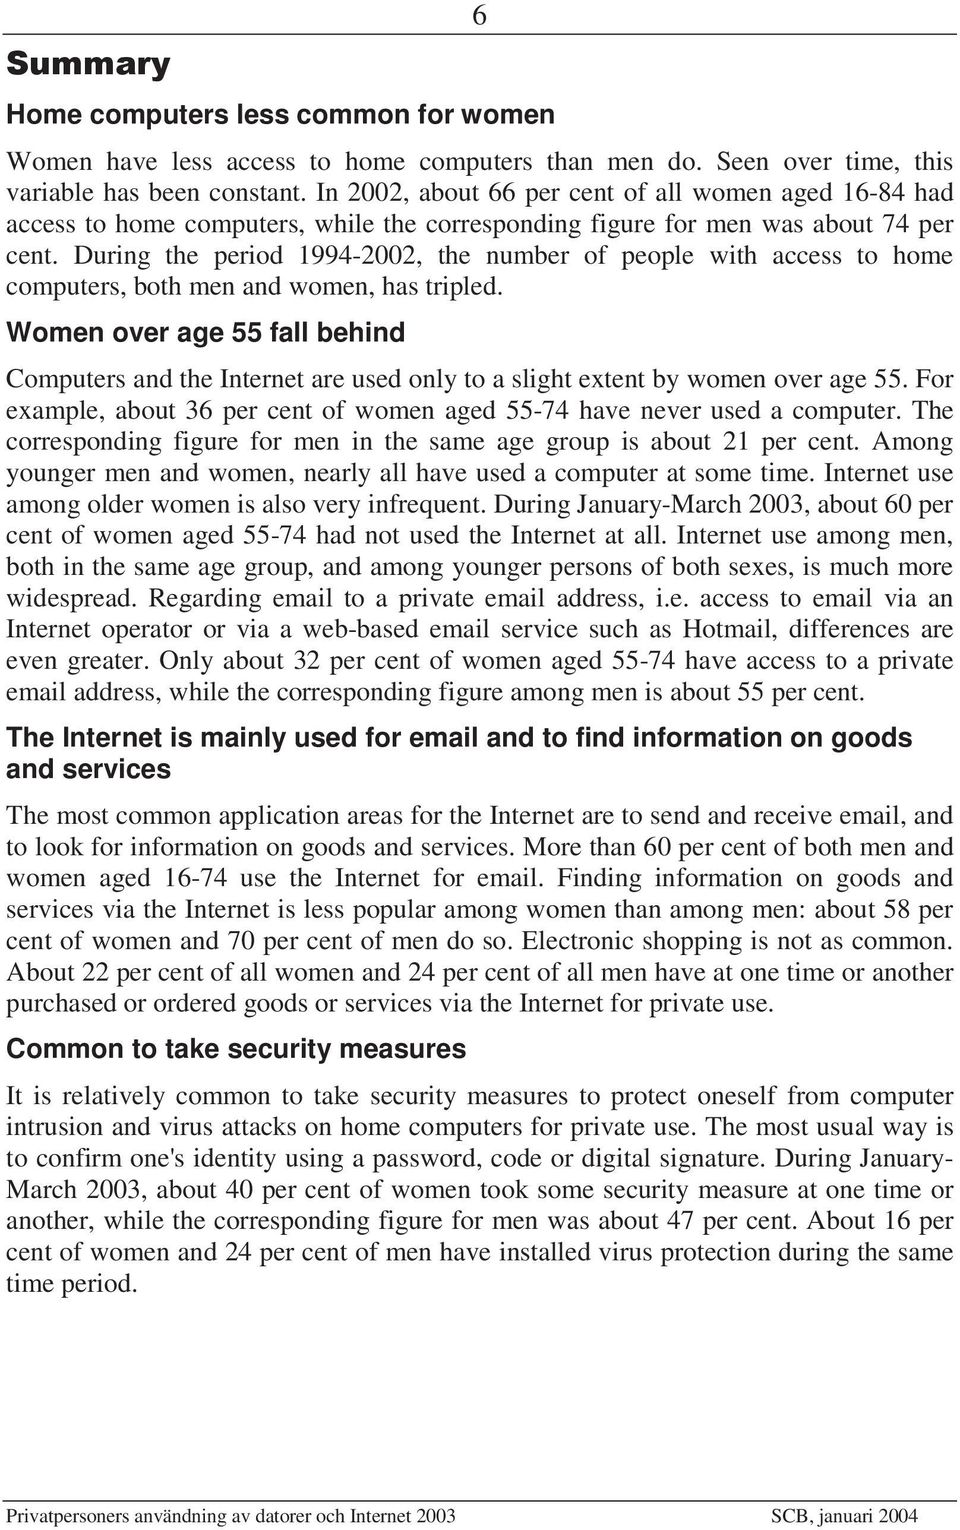 During the period 1994-2002, the number of people with access to home computers, both men and women, has tripled.